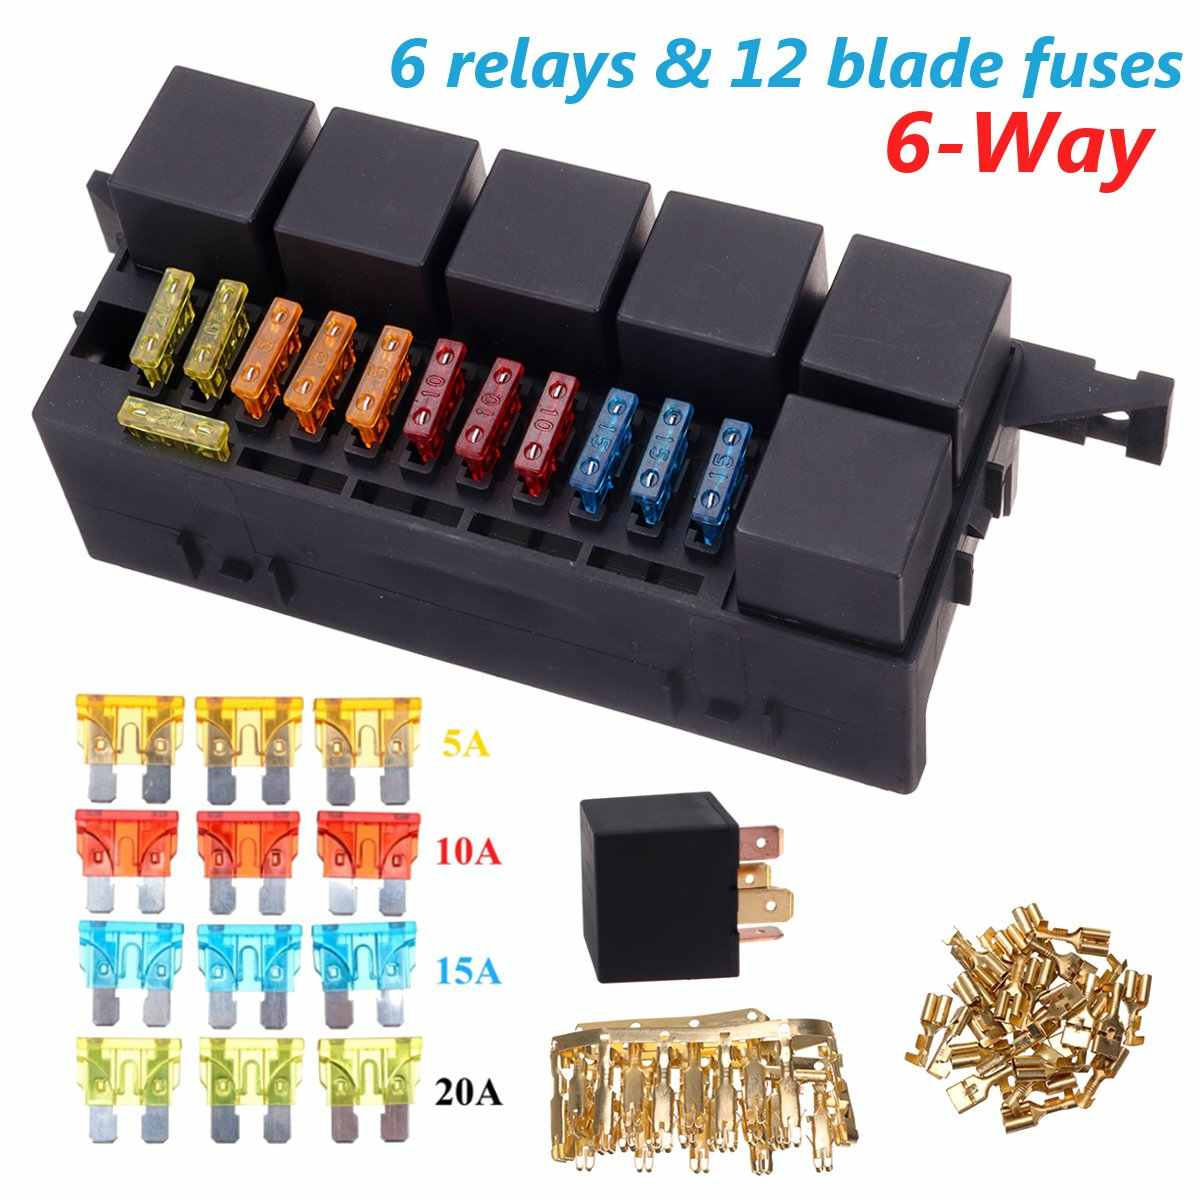 hight resolution of auto car part 6 way 6 relays w relay box 12 blade fuses waterproof